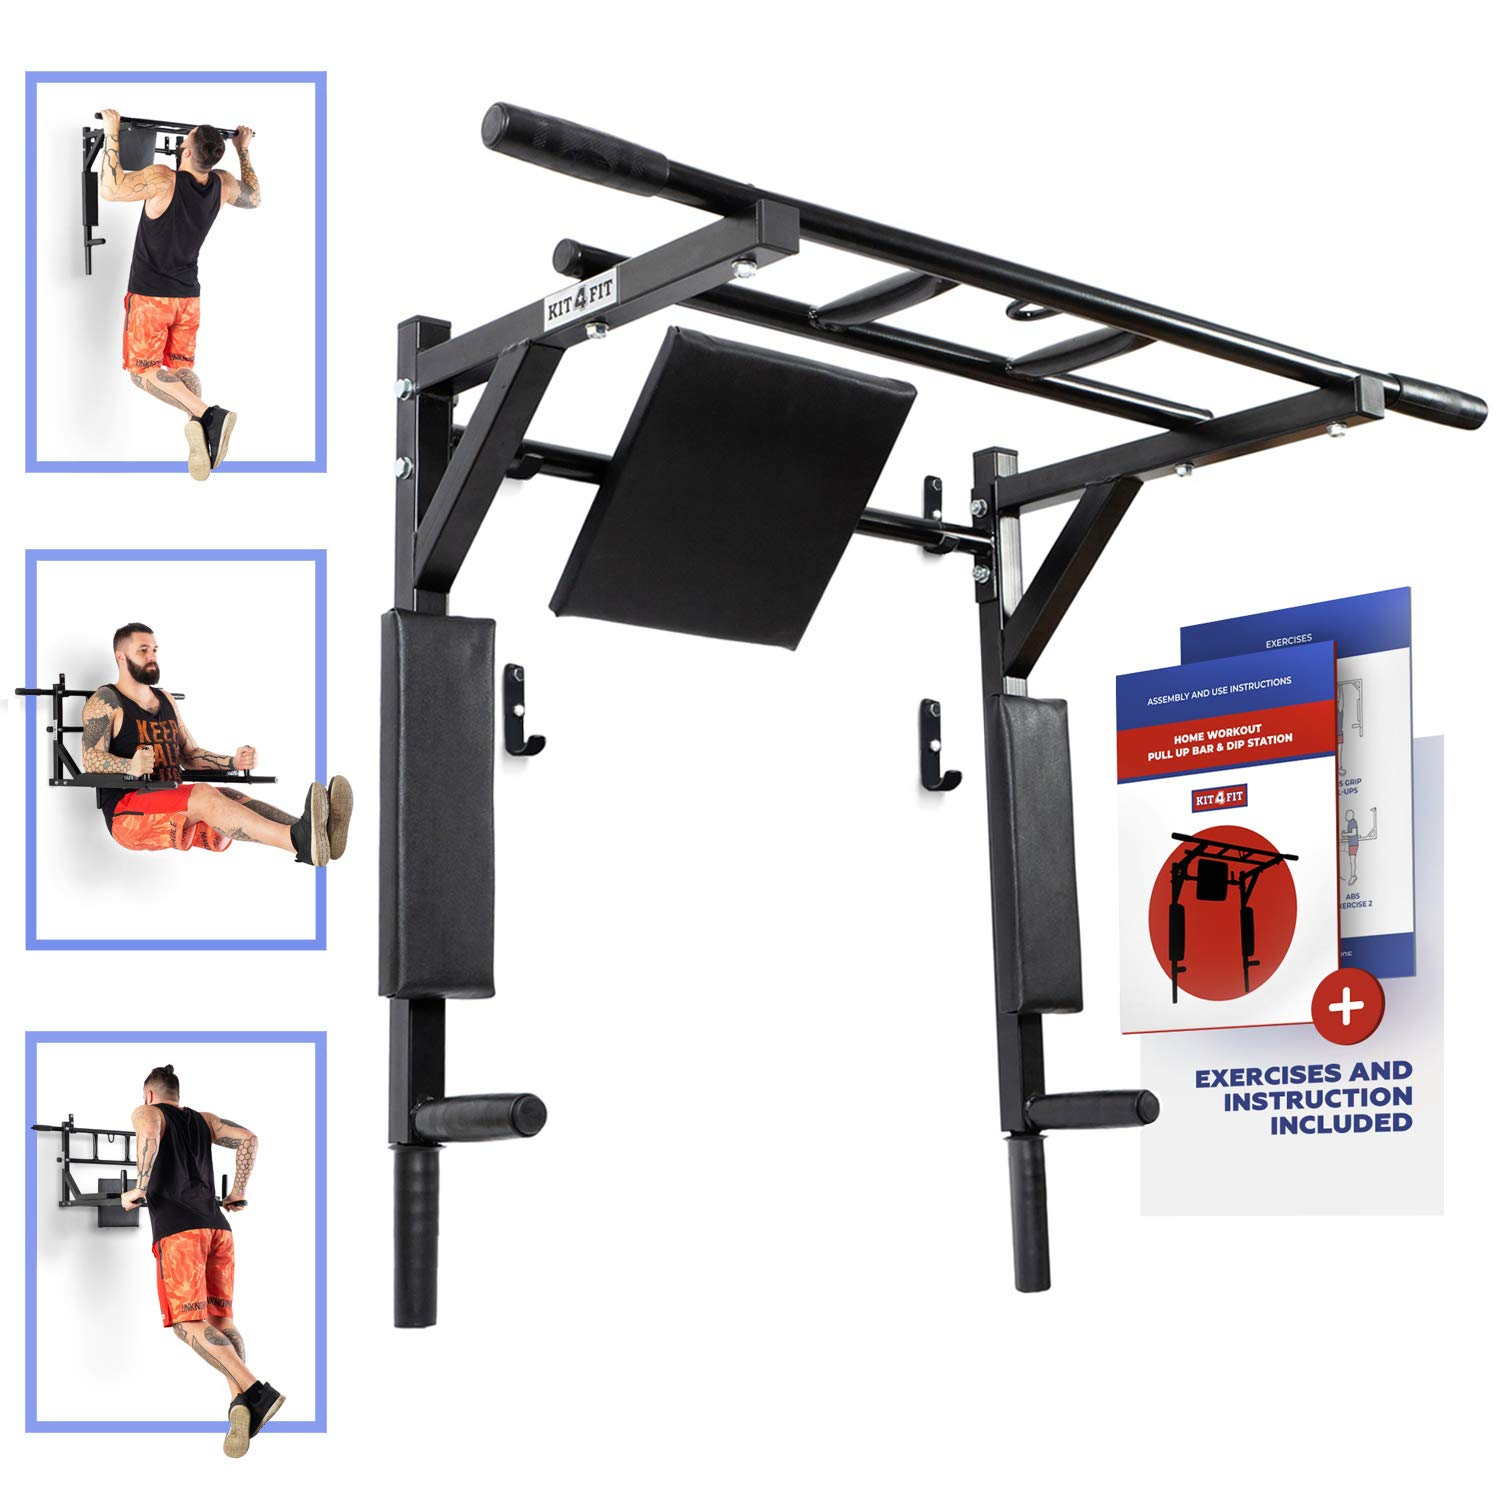 Wall Mounted Pull Up Bar and Dip Station with Vertical Knee Raise Station Indoor Home Exercise Equipment for Men Woman and Kids Great for Workout and Fitness (Black)